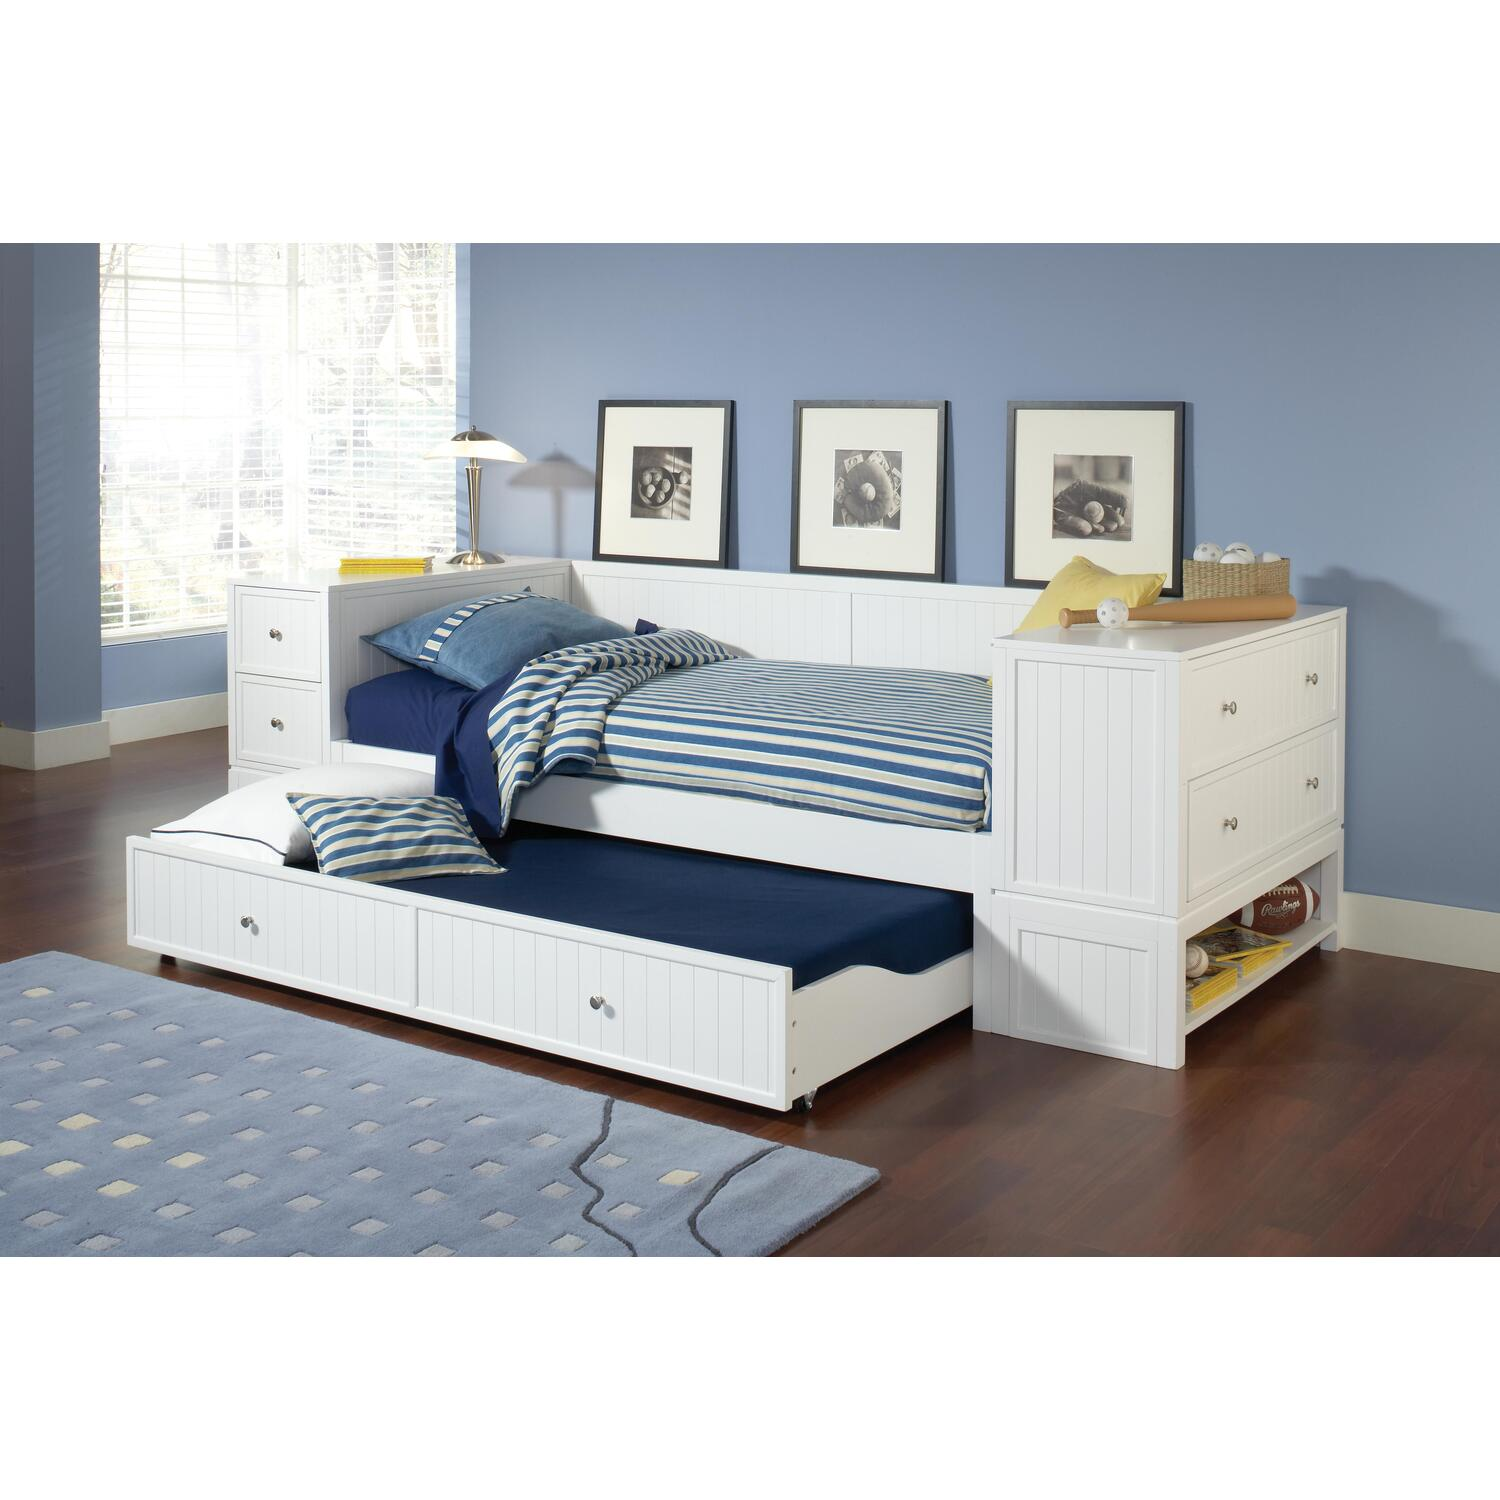 Hillsdale Furniture Cody 4pc Daybed Set Includes Daybed